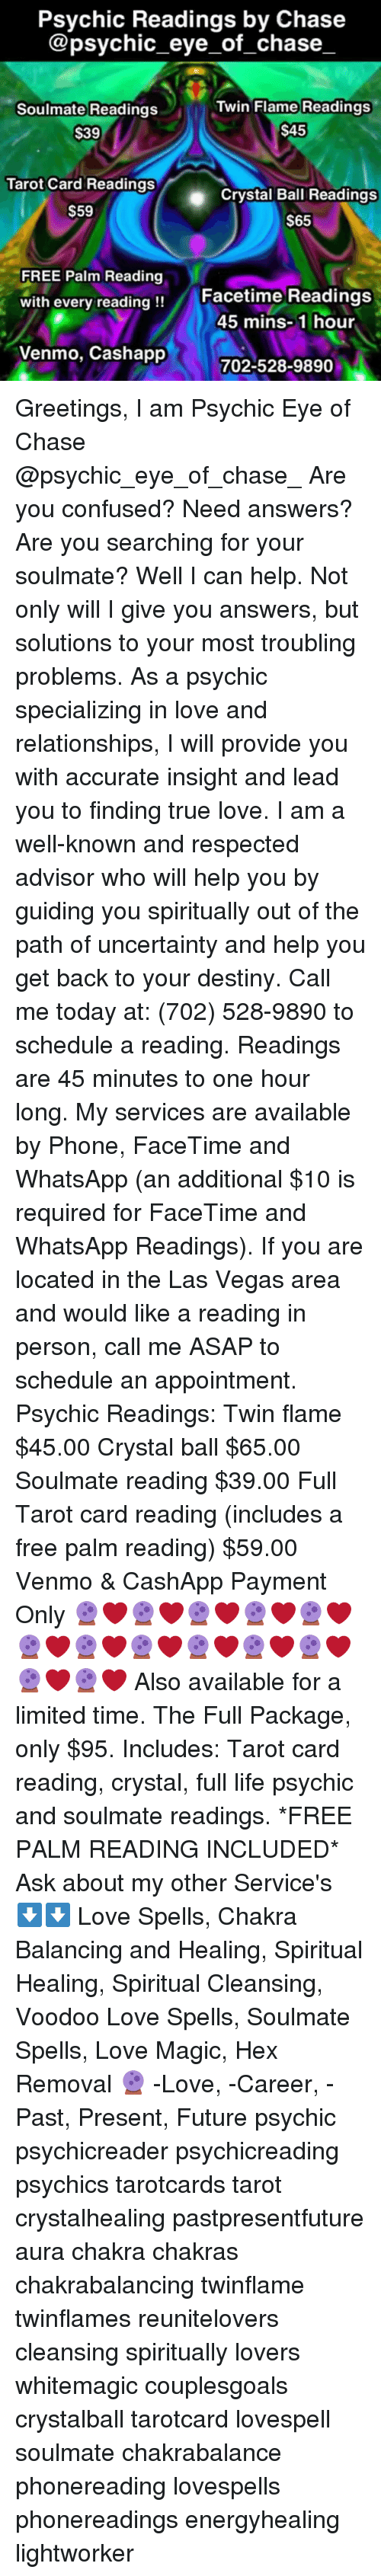 Confused, Destiny, and Facetime: Psychic Readings by Chase  @psychic_eye_of_chase  Twin Flame Readings  Soulmate Readings  $39  $45  Tarot Card Readings  Crystal Ball Readings  S65  S59  FREE Palm Reading  with every reading!!  Facetime Readings  45 mins-1 hour  Venmo, Cashapp  702-528-9890 Greetings, I am Psychic Eye of Chase @psychic_eye_of_chase_ Are you confused? Need answers? Are you searching for your soulmate? Well I can help. Not only will I give you answers, but solutions to your most troubling problems. As a psychic specializing in love and relationships, I will provide you with accurate insight and lead you to finding true love. I am a well-known and respected advisor who will help you by guiding you spiritually out of the path of uncertainty and help you get back to your destiny. Call me today at: (702) 528-9890 to schedule a reading. Readings are 45 minutes to one hour long. My services are available by Phone, FaceTime and WhatsApp (an additional $10 is required for FaceTime and WhatsApp Readings). If you are located in the Las Vegas area and would like a reading in person, call me ASAP to schedule an appointment. Psychic Readings: Twin flame $45.00 Crystal ball $65.00 Soulmate reading $39.00 Full Tarot card reading (includes a free palm reading) $59.00 Venmo & CashApp Payment Only 🔮❤🔮❤🔮❤🔮❤🔮❤🔮❤🔮❤🔮❤🔮❤🔮❤🔮❤🔮❤🔮❤ Also available for a limited time. The Full Package, only $95. Includes: Tarot card reading, crystal, full life psychic and soulmate readings. *FREE PALM READING INCLUDED* Ask about my other Service's ⬇⬇ Love Spells, Chakra Balancing and Healing, Spiritual Healing, Spiritual Cleansing, Voodoo Love Spells, Soulmate Spells, Love Magic, Hex Removal 🔮 -Love, -Career, -Past, Present, Future psychic psychicreader psychicreading psychics tarotcards tarot crystalhealing pastpresentfuture aura chakra chakras chakrabalancing twinflame twinflames reunitelovers cleansing spiritually lovers whitemagic couplesgoals crystalball tarotcard lovespell soulmate chakrabalance phonereading lovespells phonereadings energyhealing lightworker